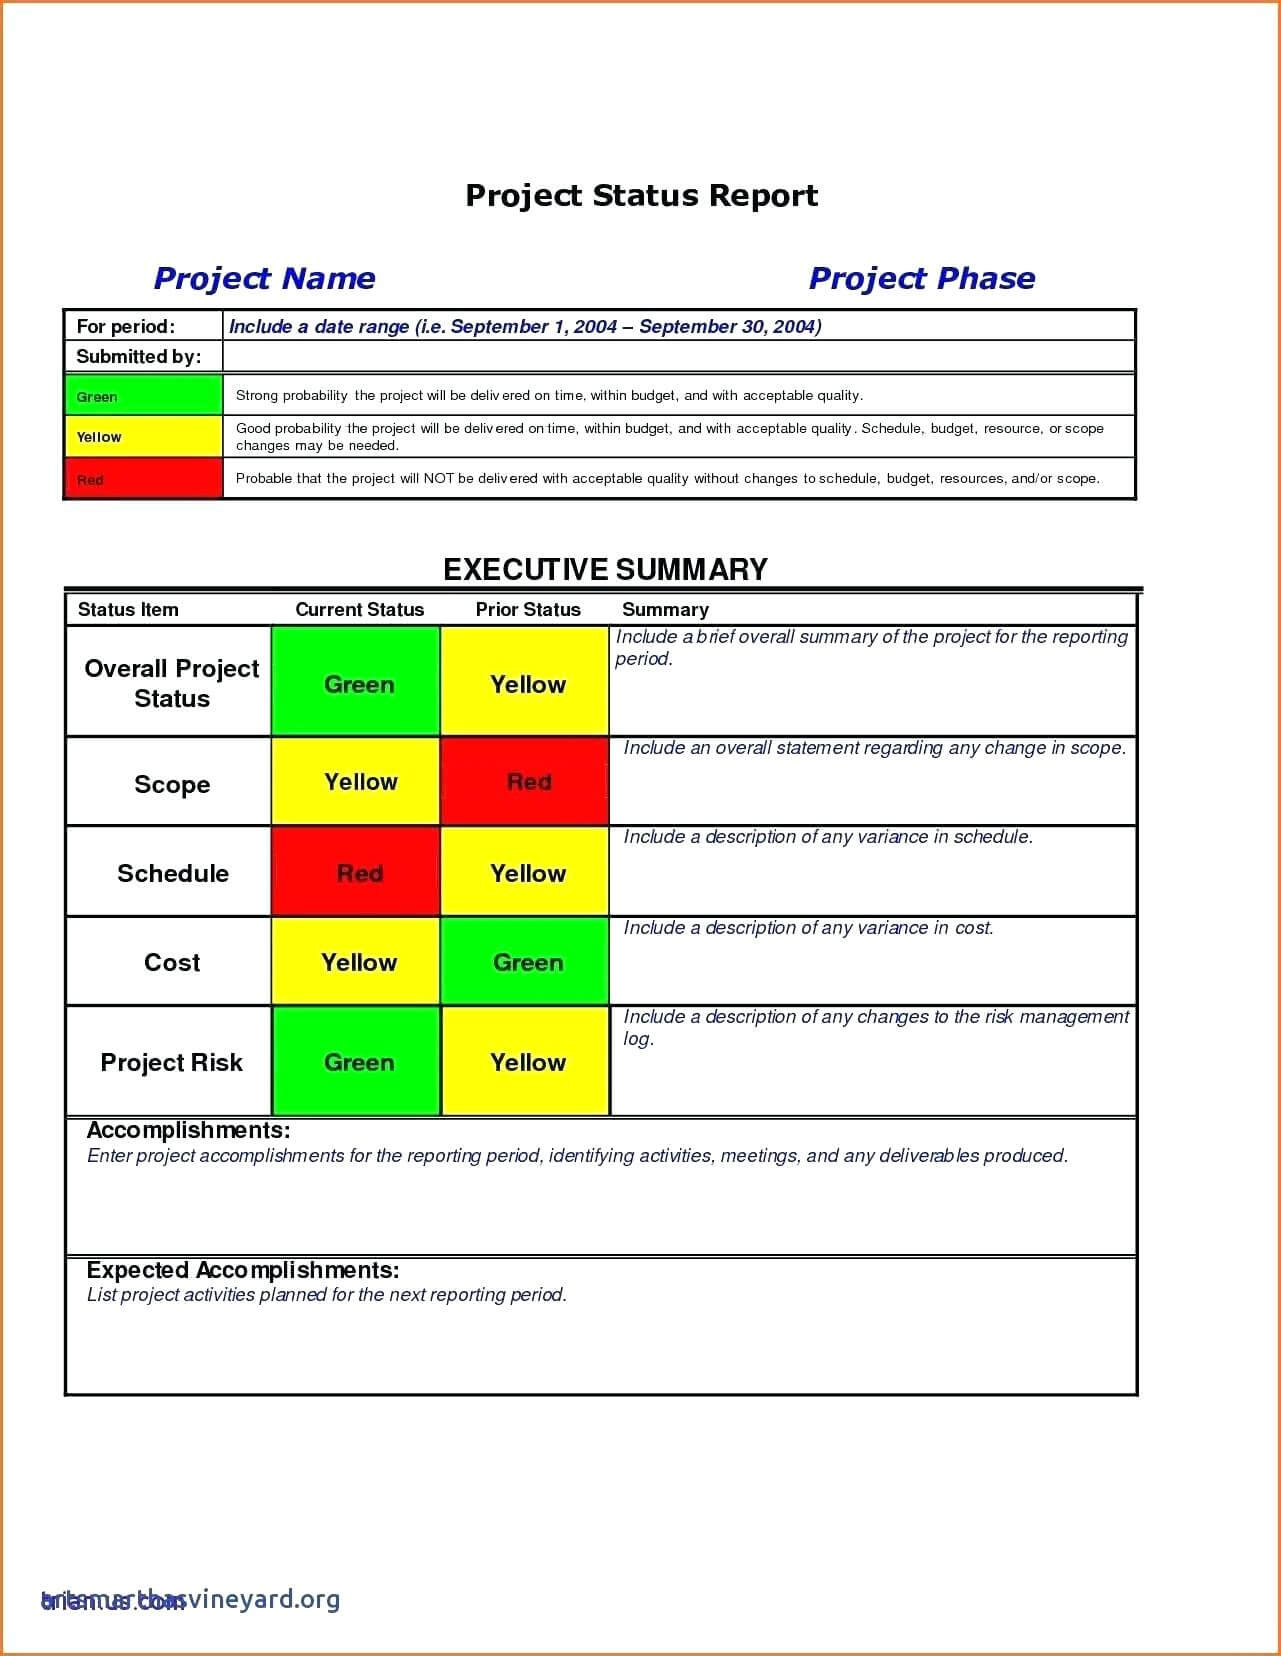 010 Template Ideas Project Management Executive Summary Within Executive Summary Project Status Report Template